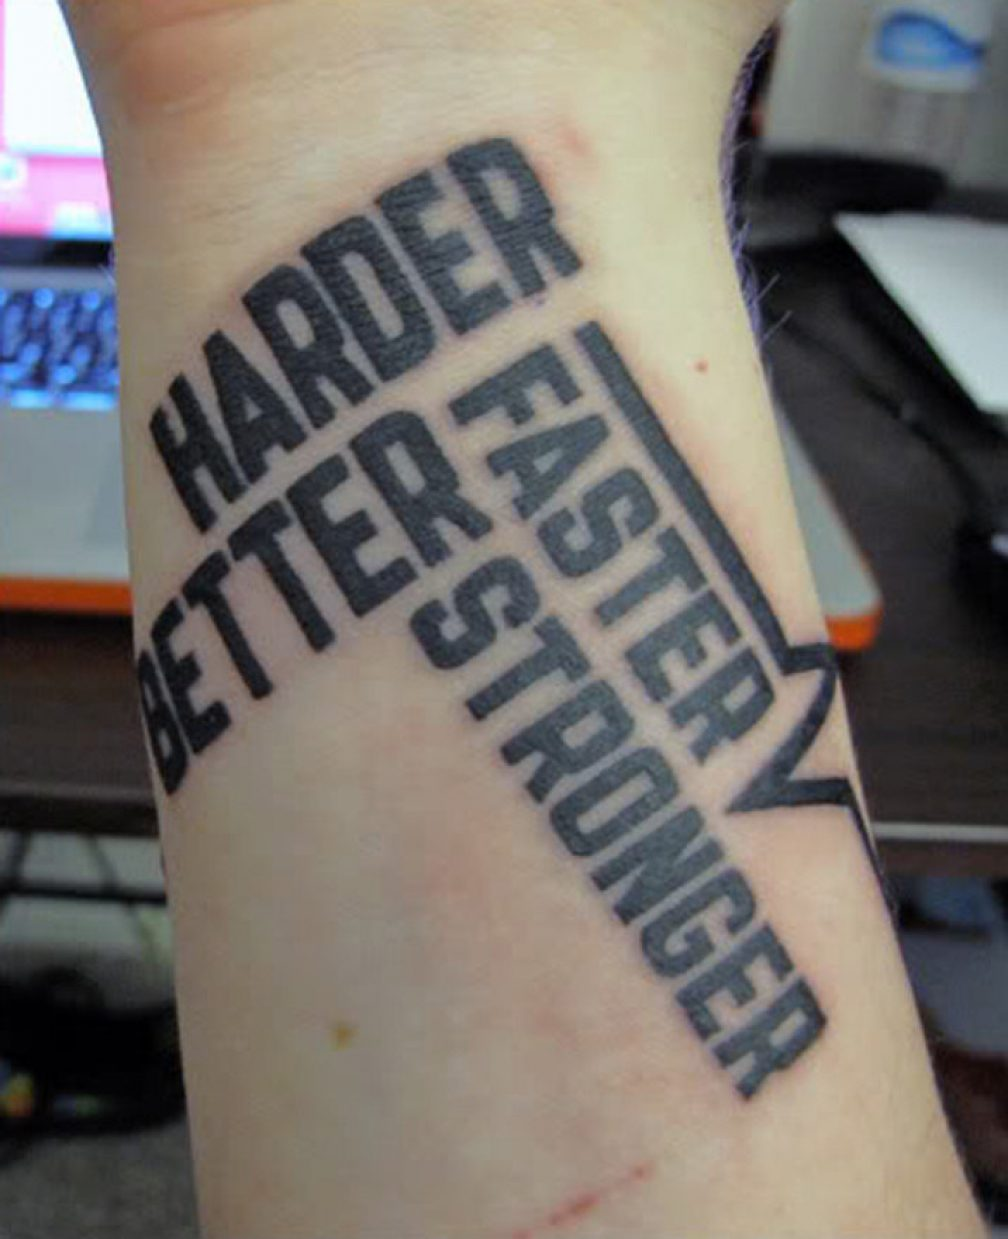 The best (and worst) dance music tattoos - Blog - Mixmag